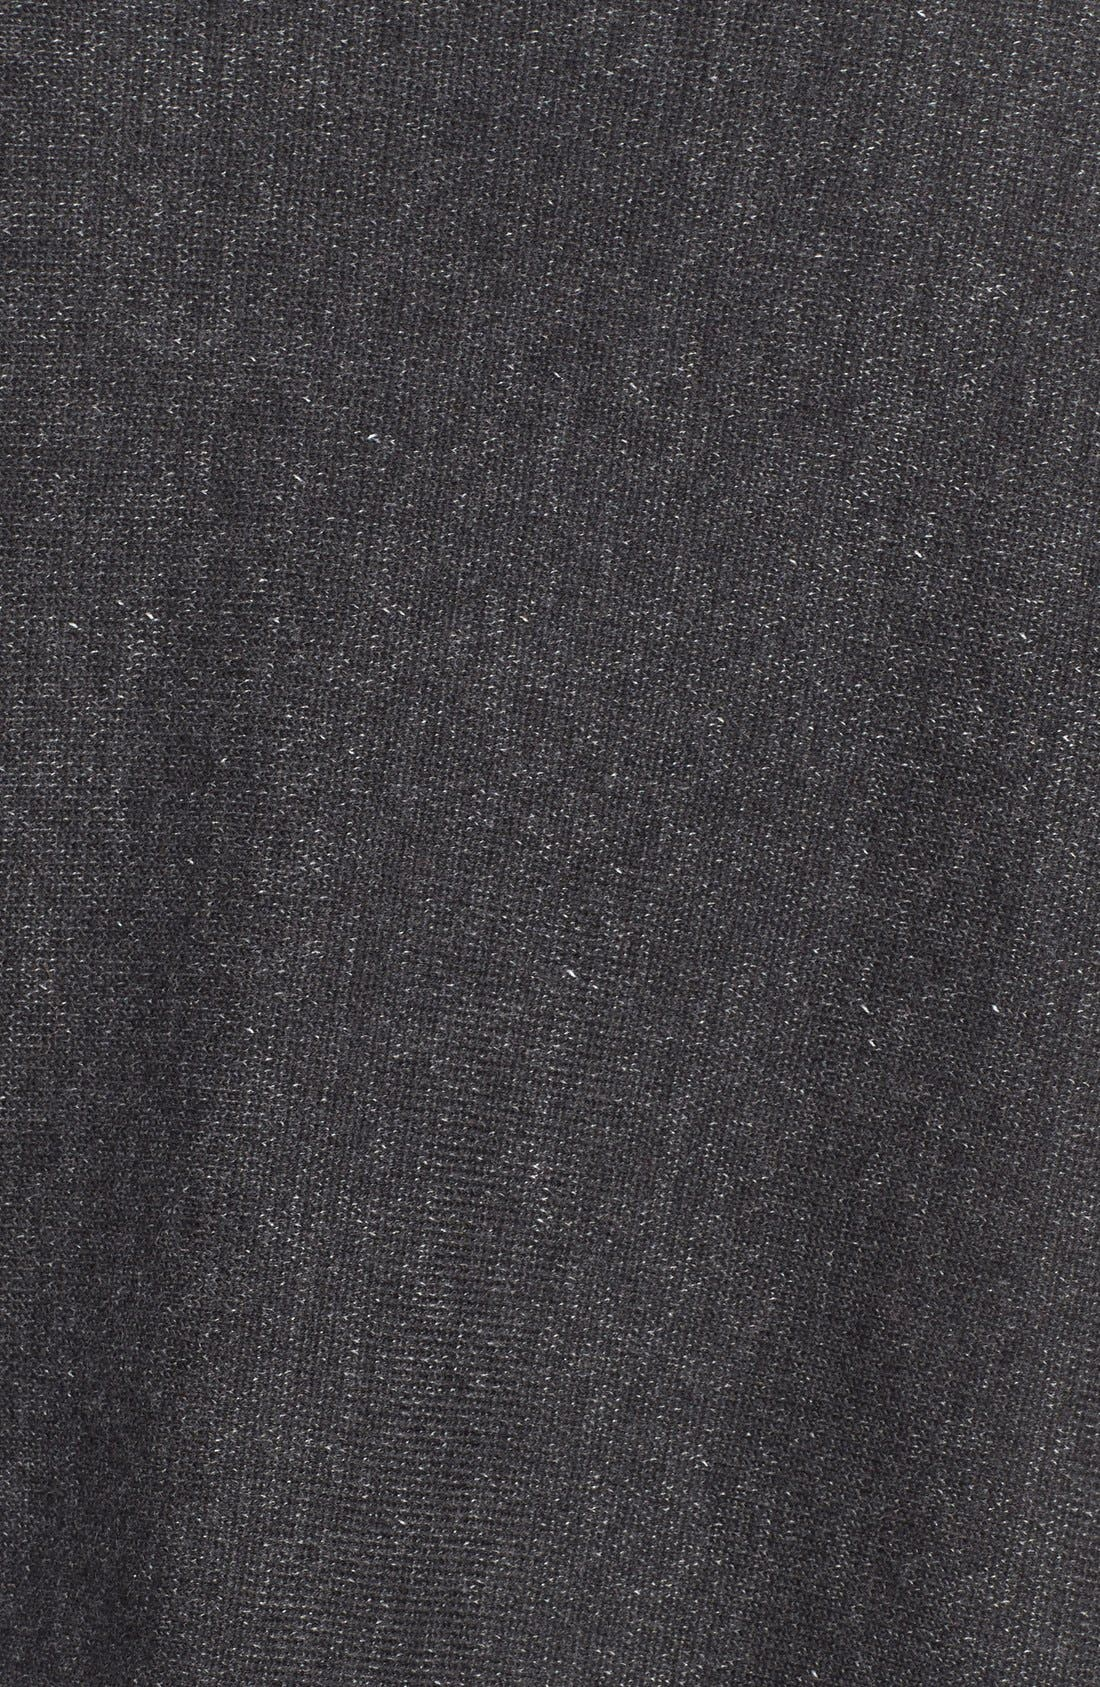 Plait Detail Organic Cotton Boxy Top,                             Alternate thumbnail 10, color,                             021